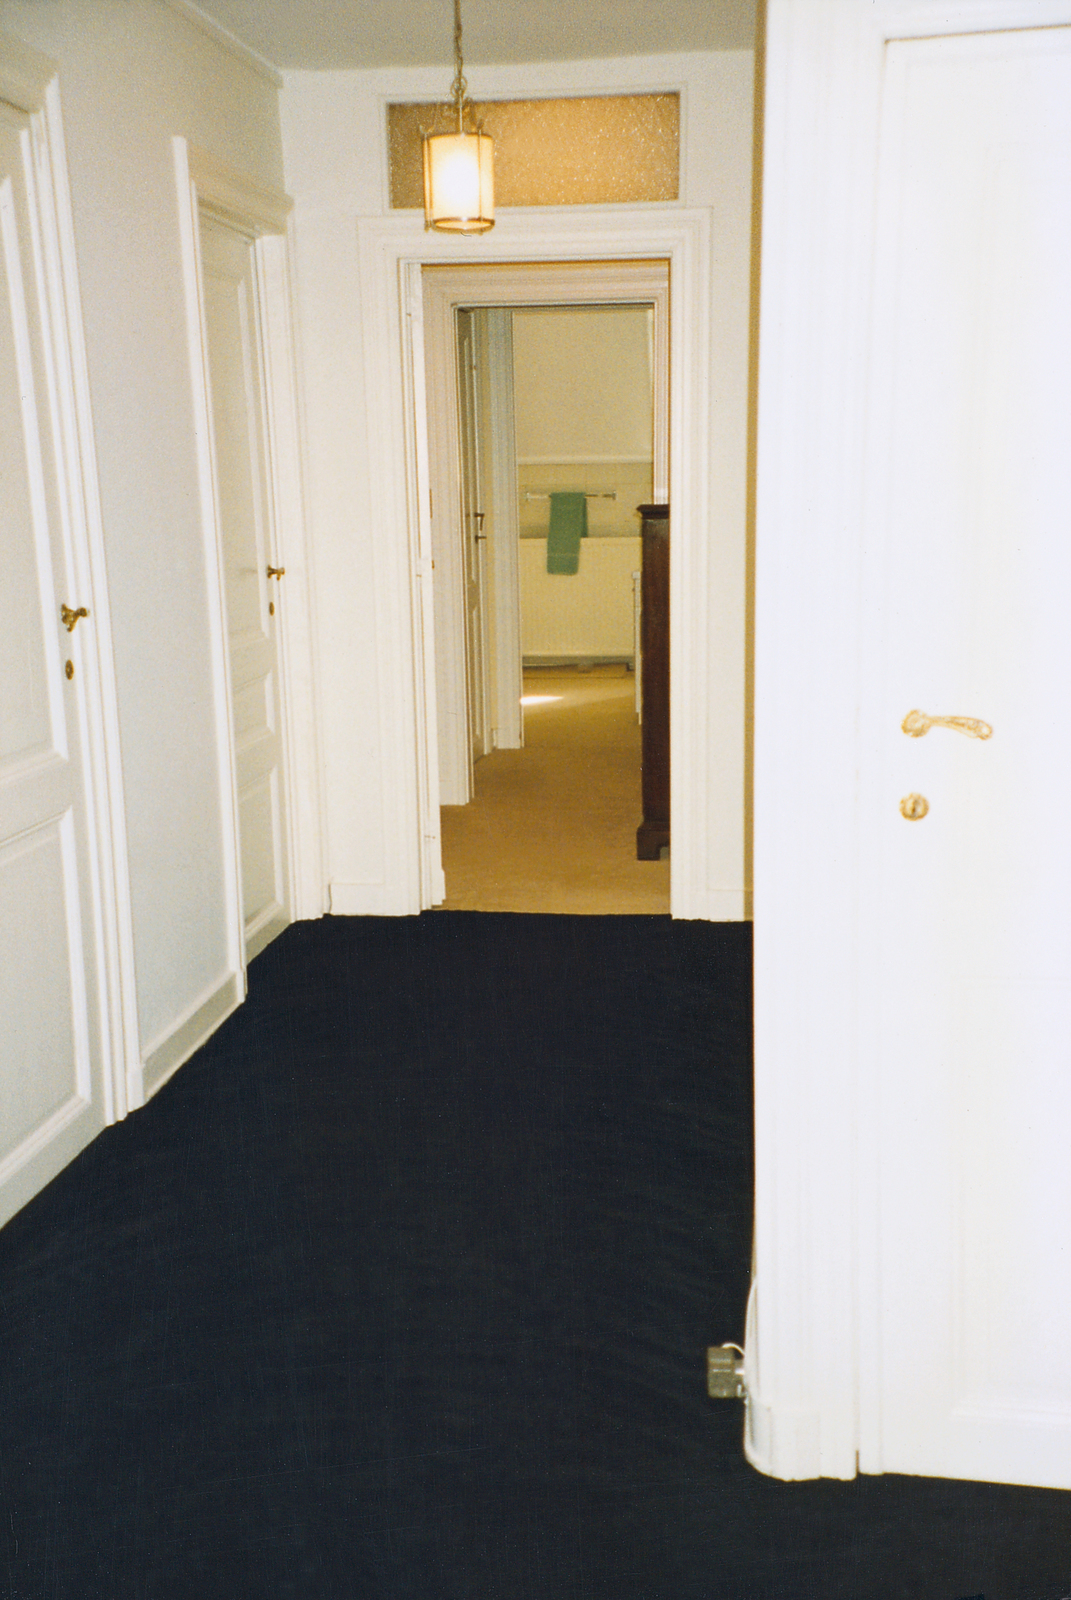 Brussels - Deputy Chief of Mission Residence - 1993